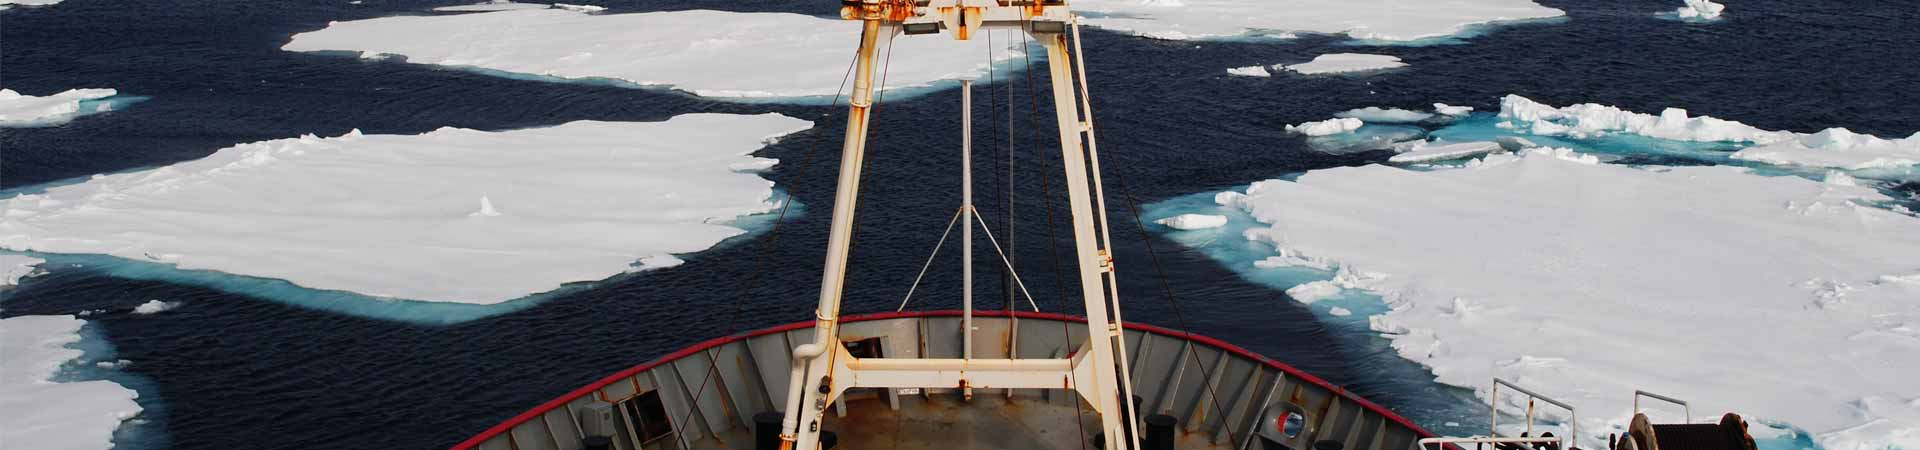 View from bow of a research vessel sailing though Arctic Ocean with sea ice